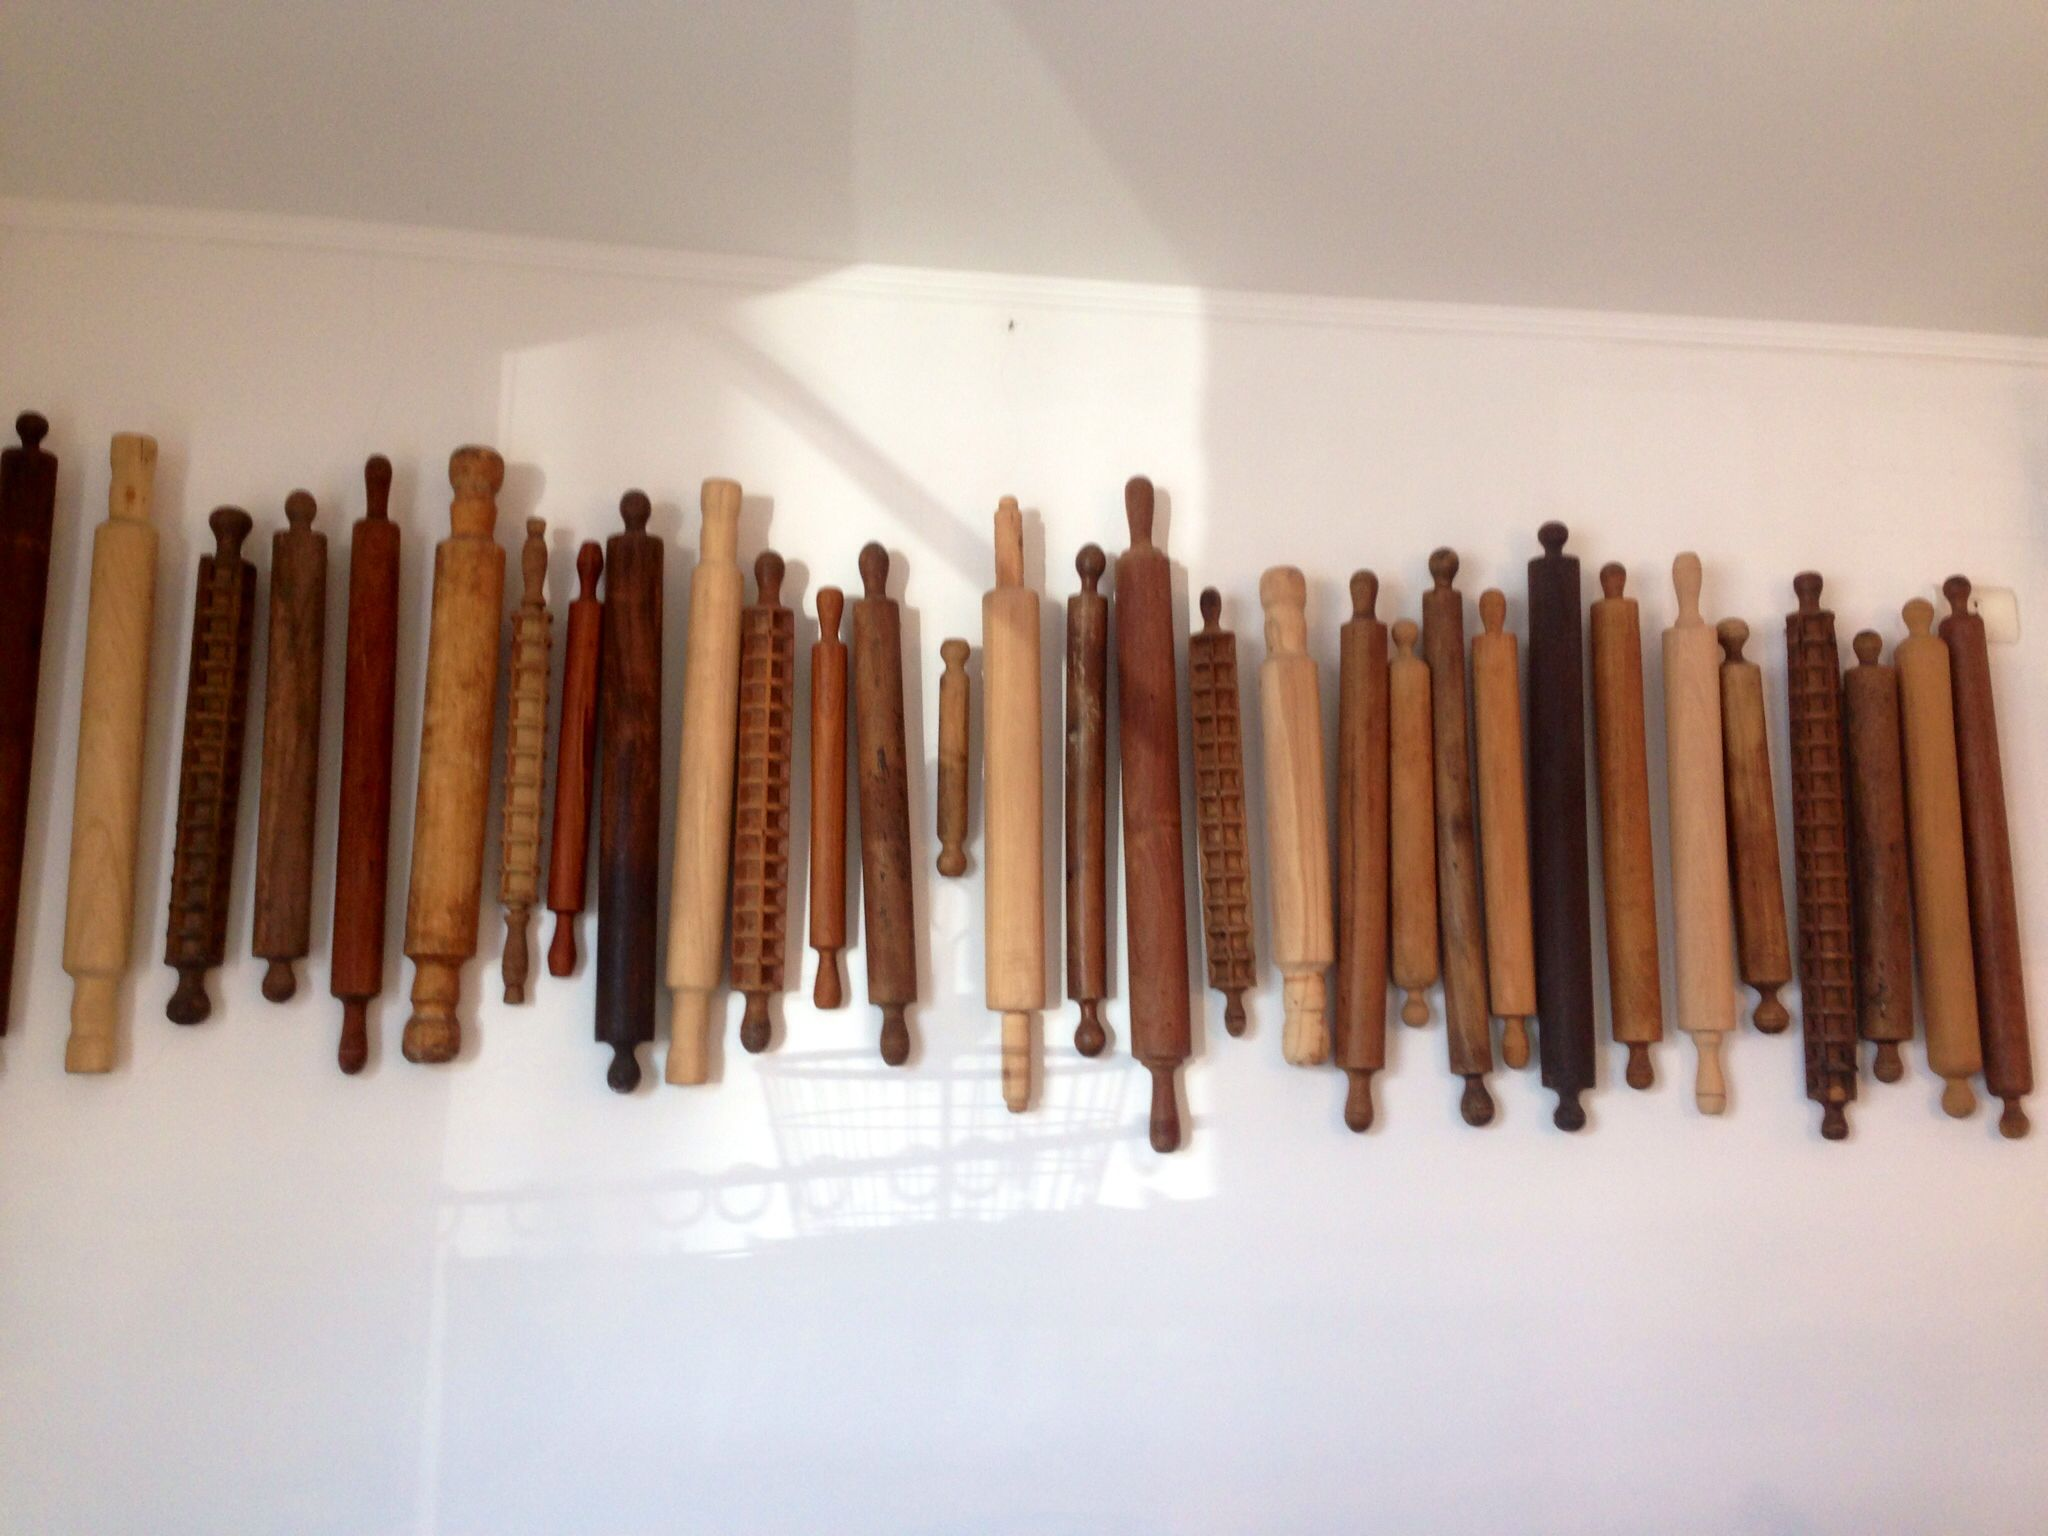 Decorating a wall with rolling pins decoration pinterest decorating a wall with rolling pins amipublicfo Choice Image